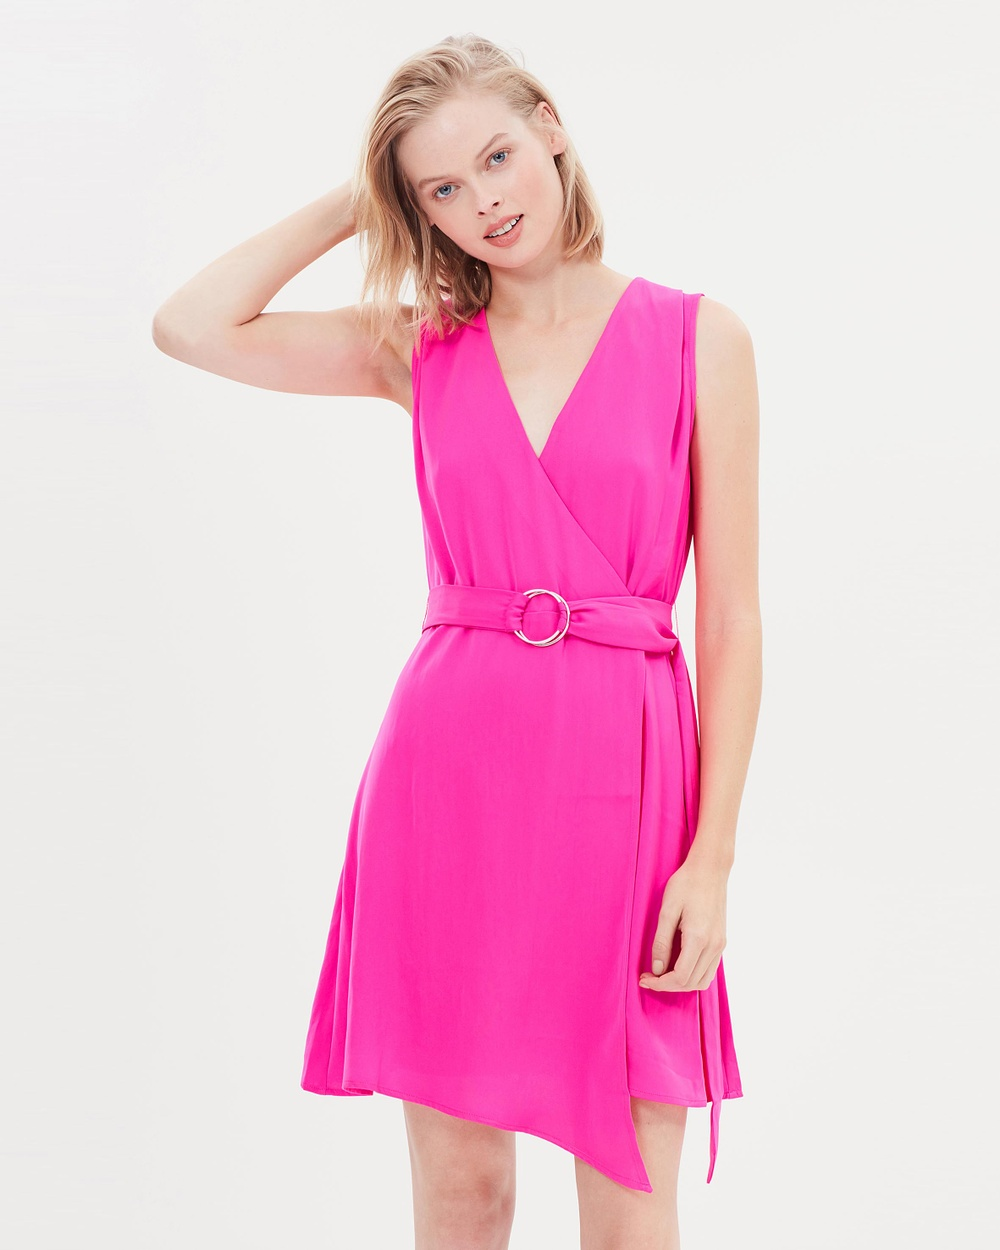 Warehouse Asymmetric Wrap Belt Dress Dresses Pink Asymmetric Wrap Belt Dress